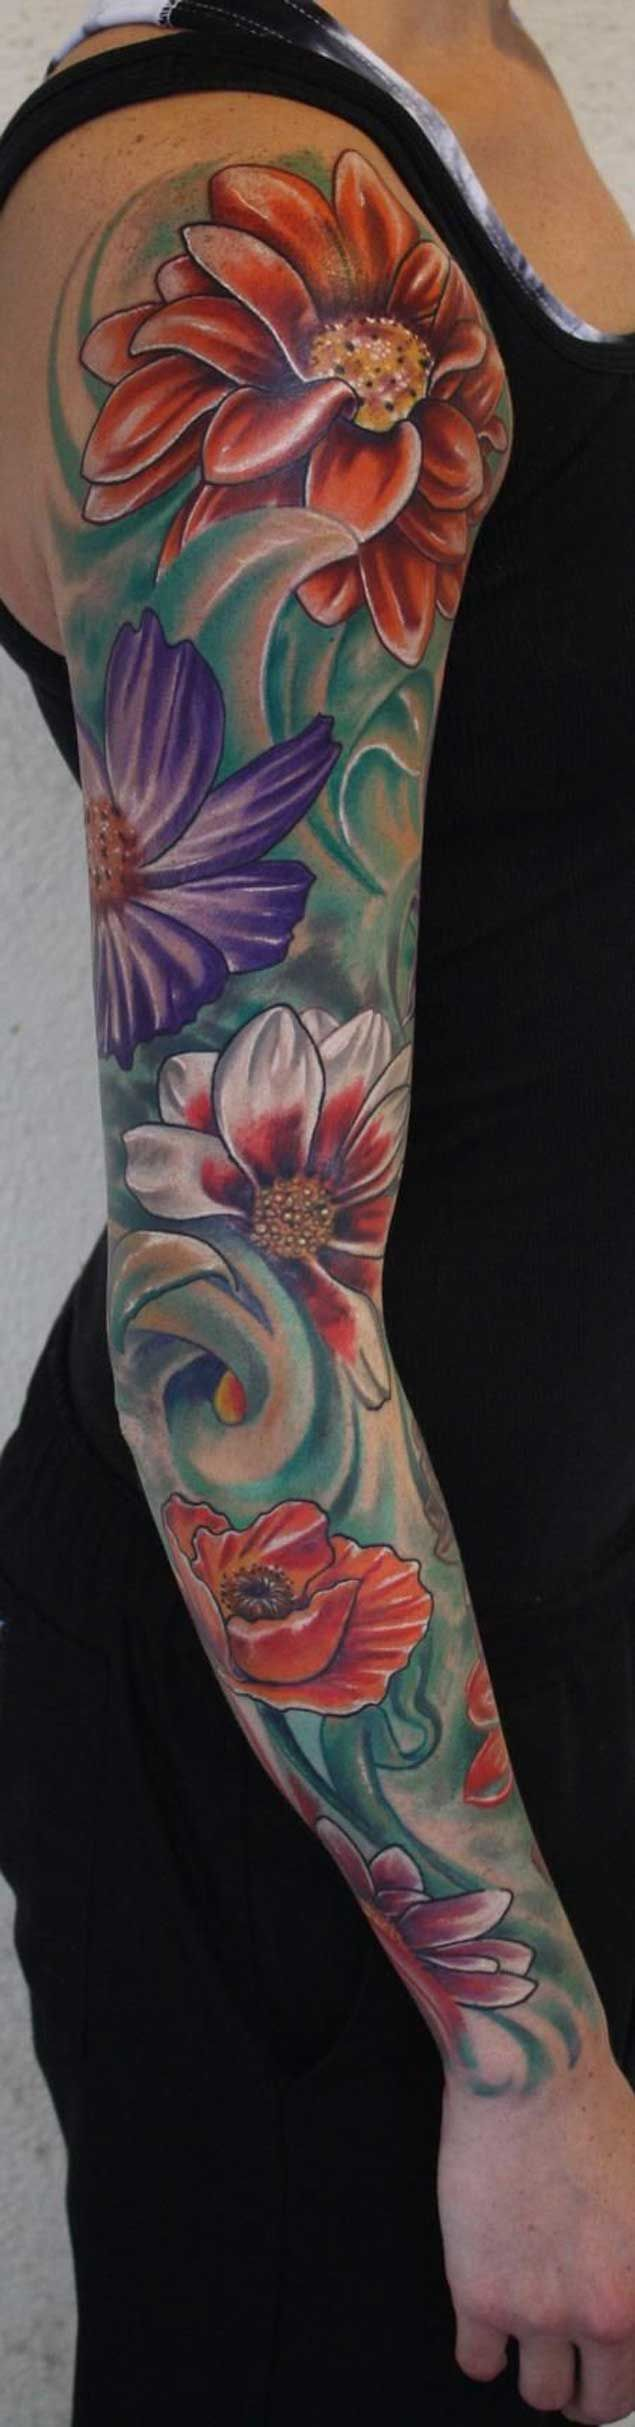 80 crazy and amazing tattoo designs for men and women desiznworld - 30 Fabulous Floral Sleeve Tattoos For Women